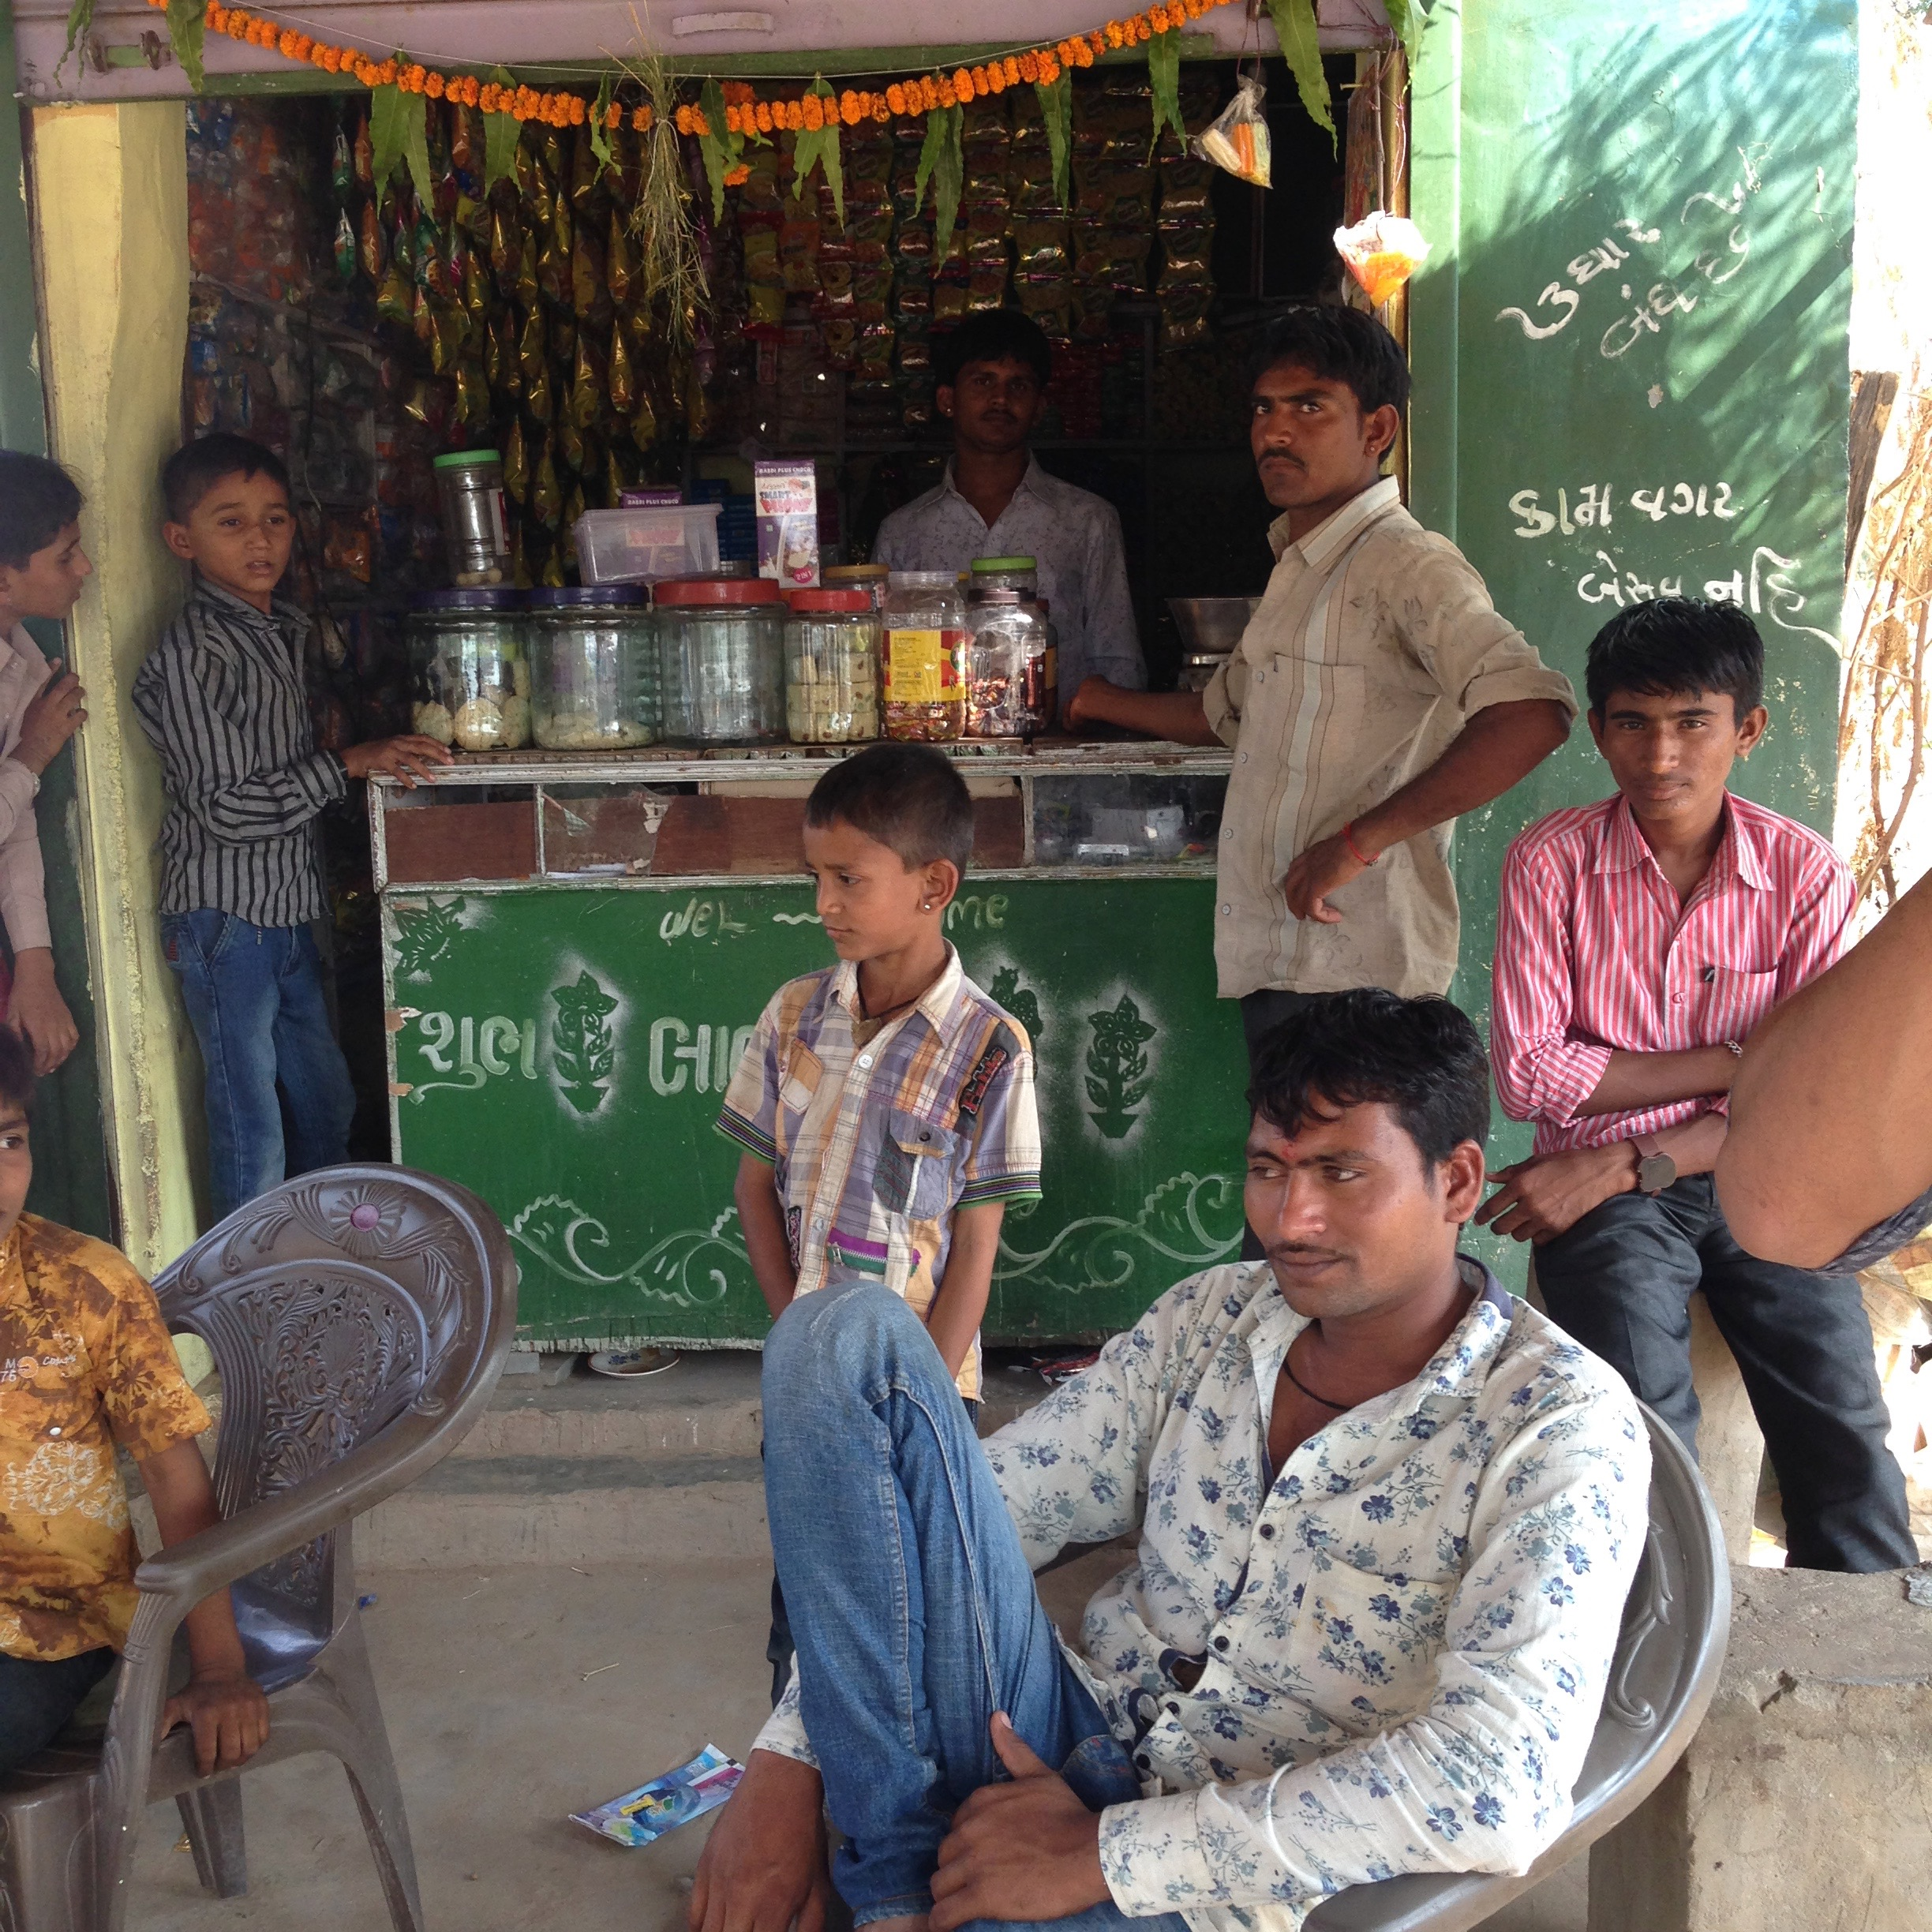 Pimps outside the village shop, Wadia, Gujarat, India